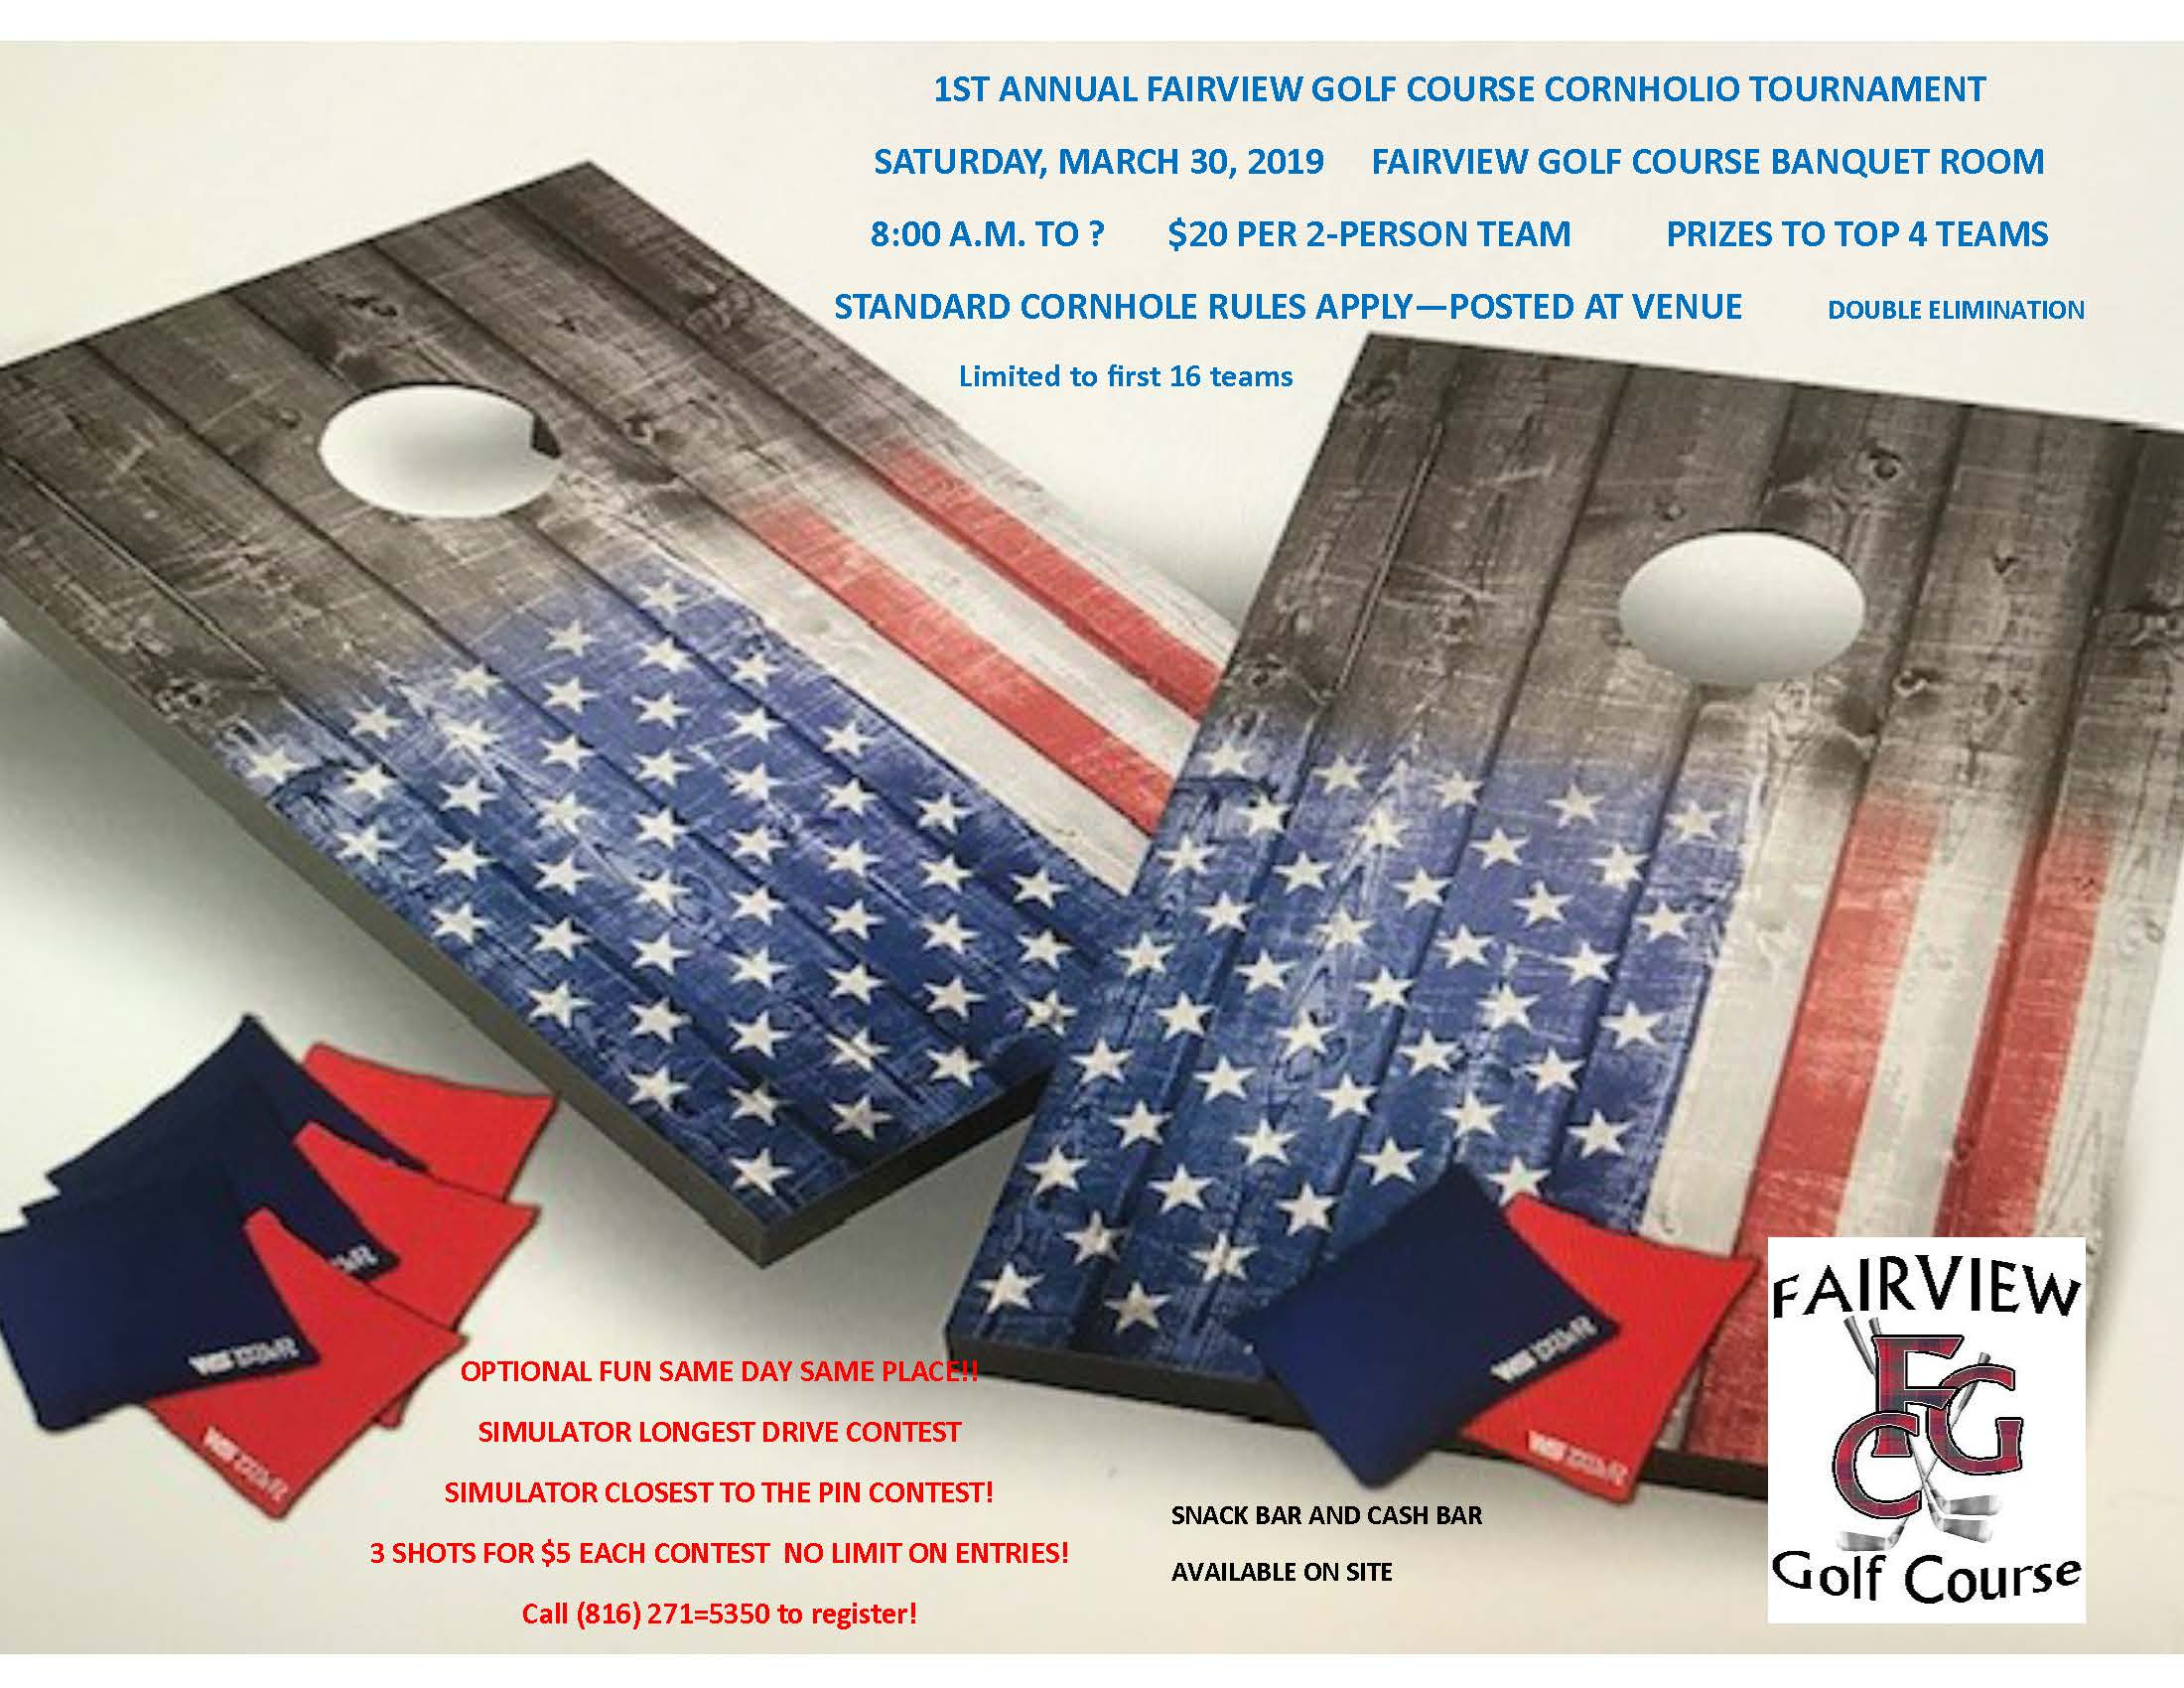 Poster for Fairview Cornhole Tournament